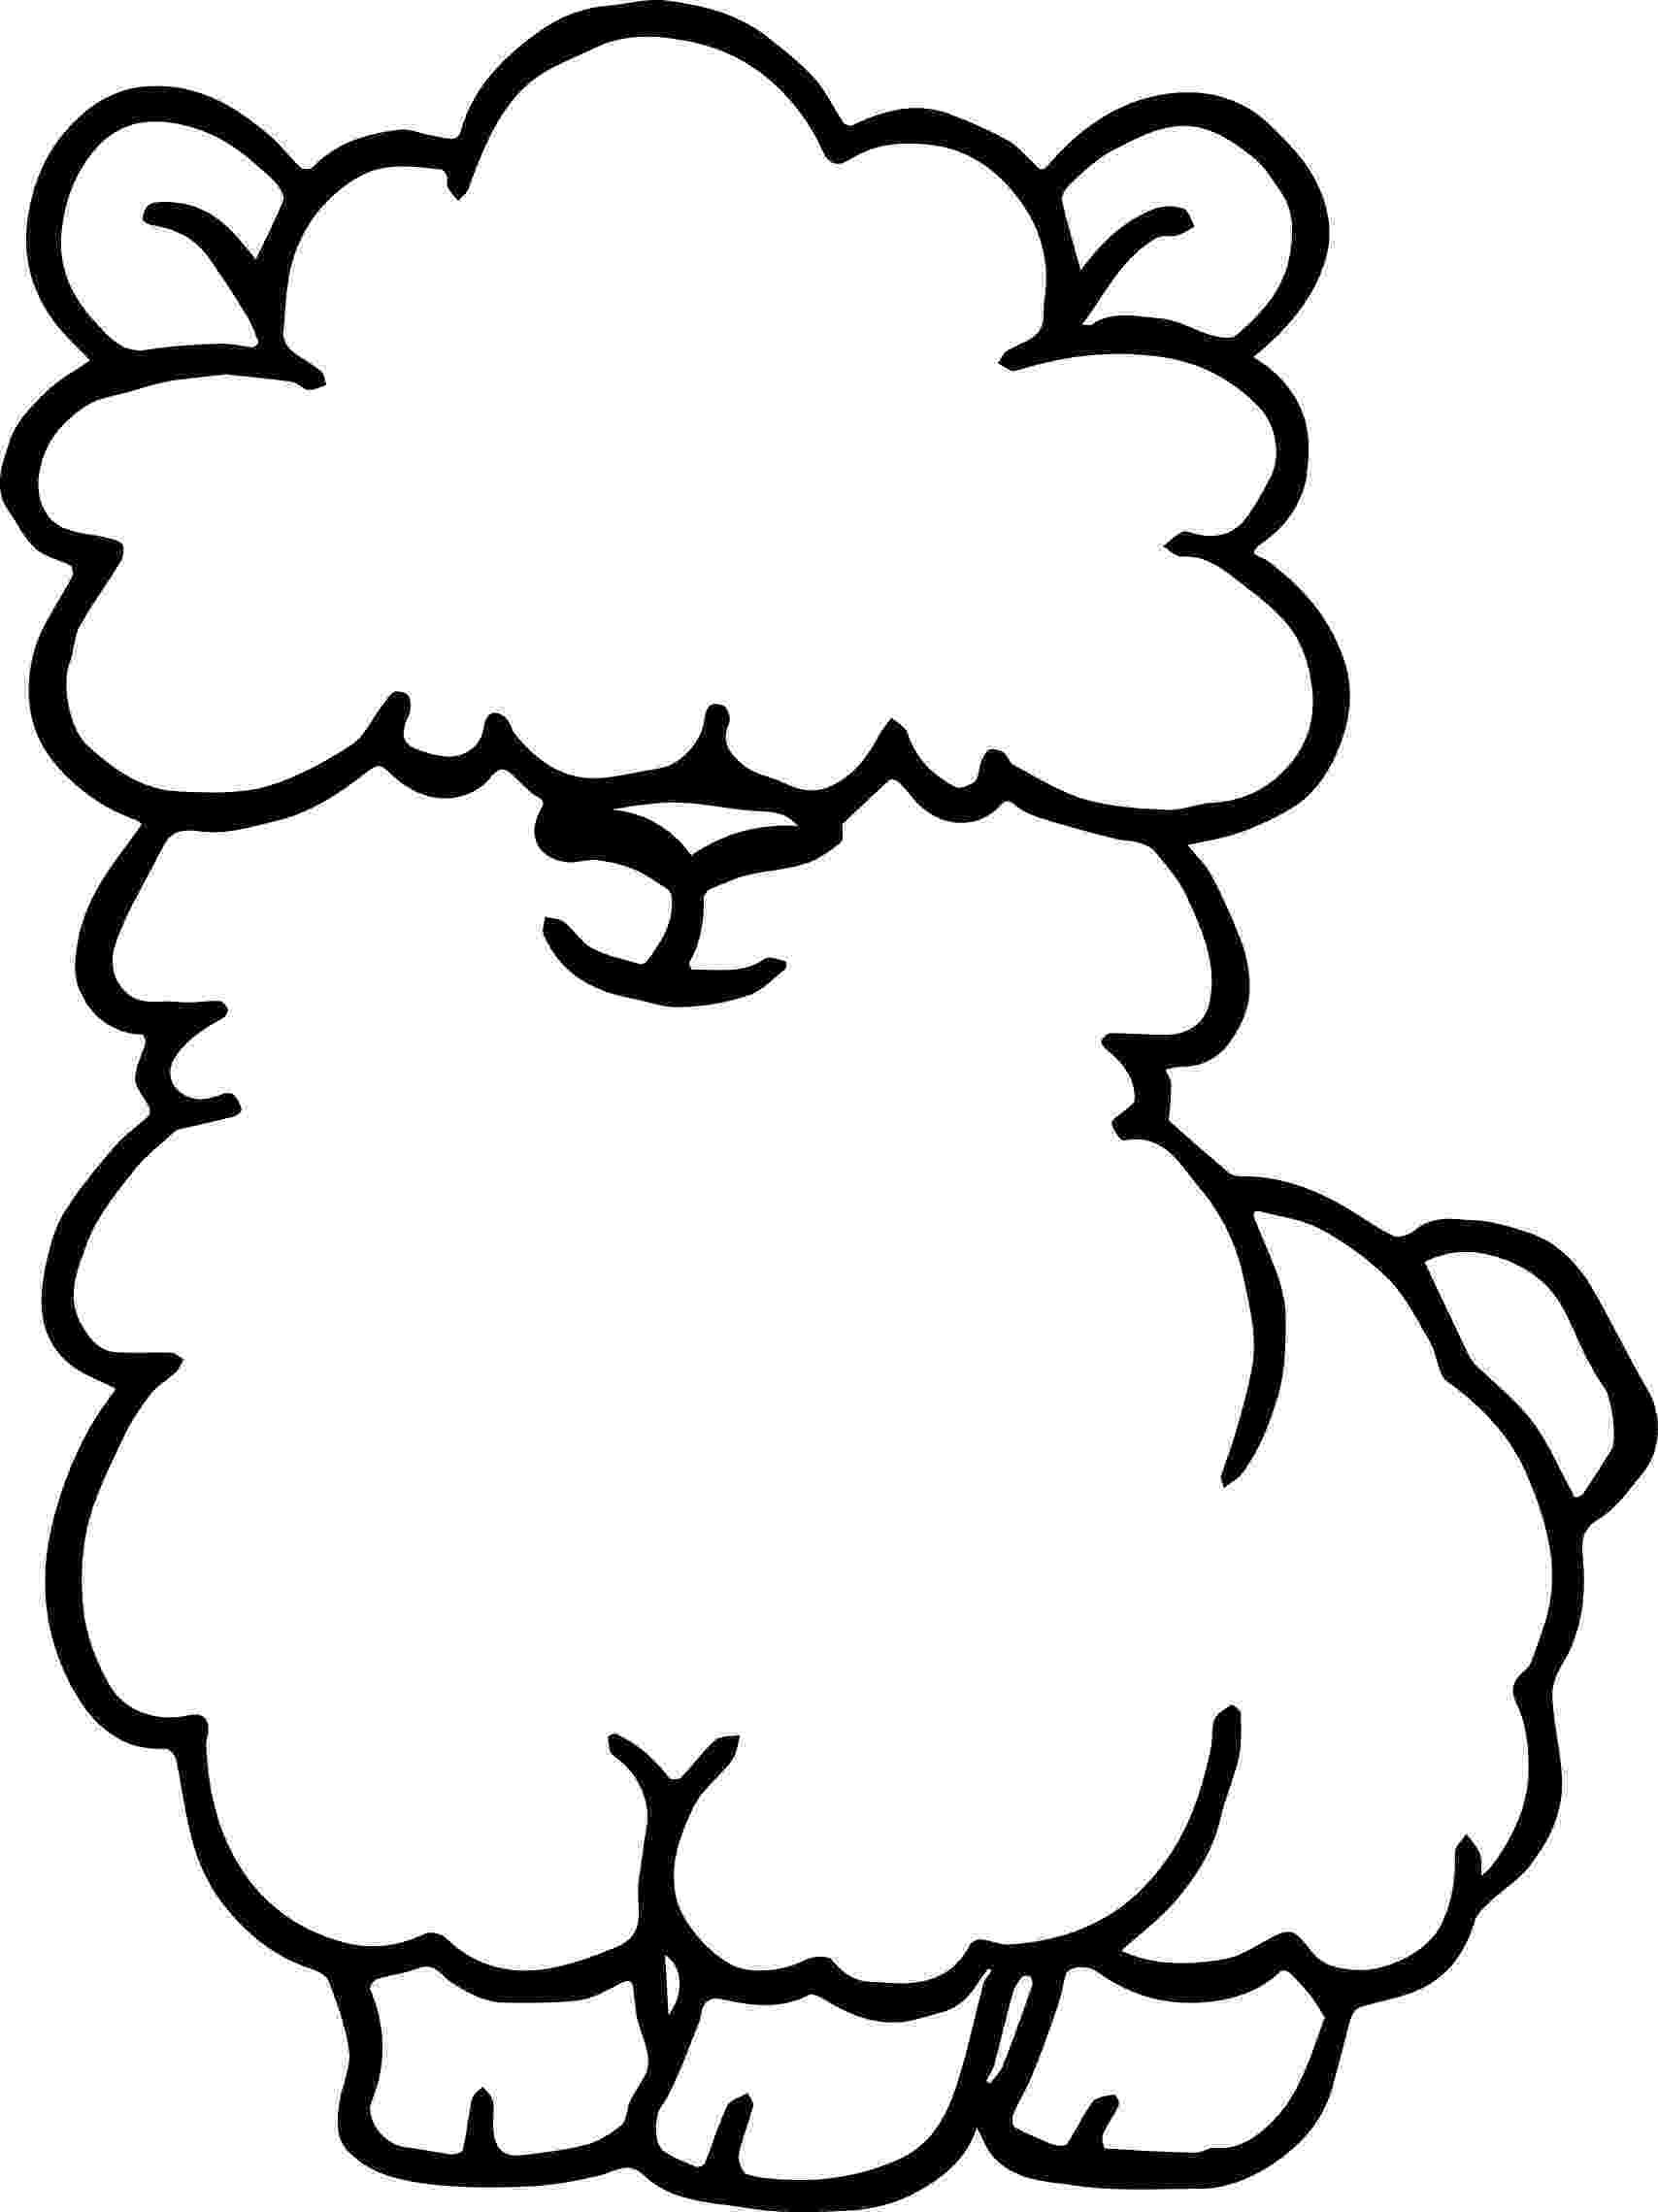 alpaca coloring pages alpaca coloring pages free printable alpacas coloring pages coloring alpaca pages